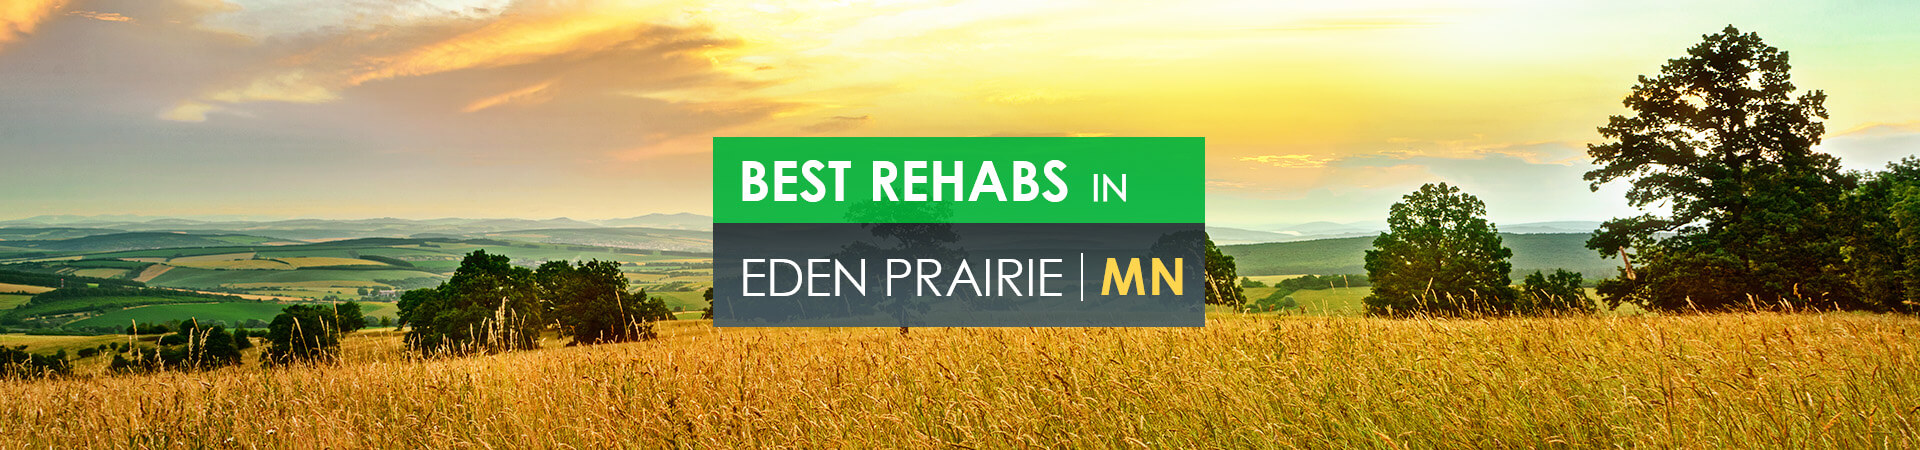 Best rehabs in Eden Prairie, MN